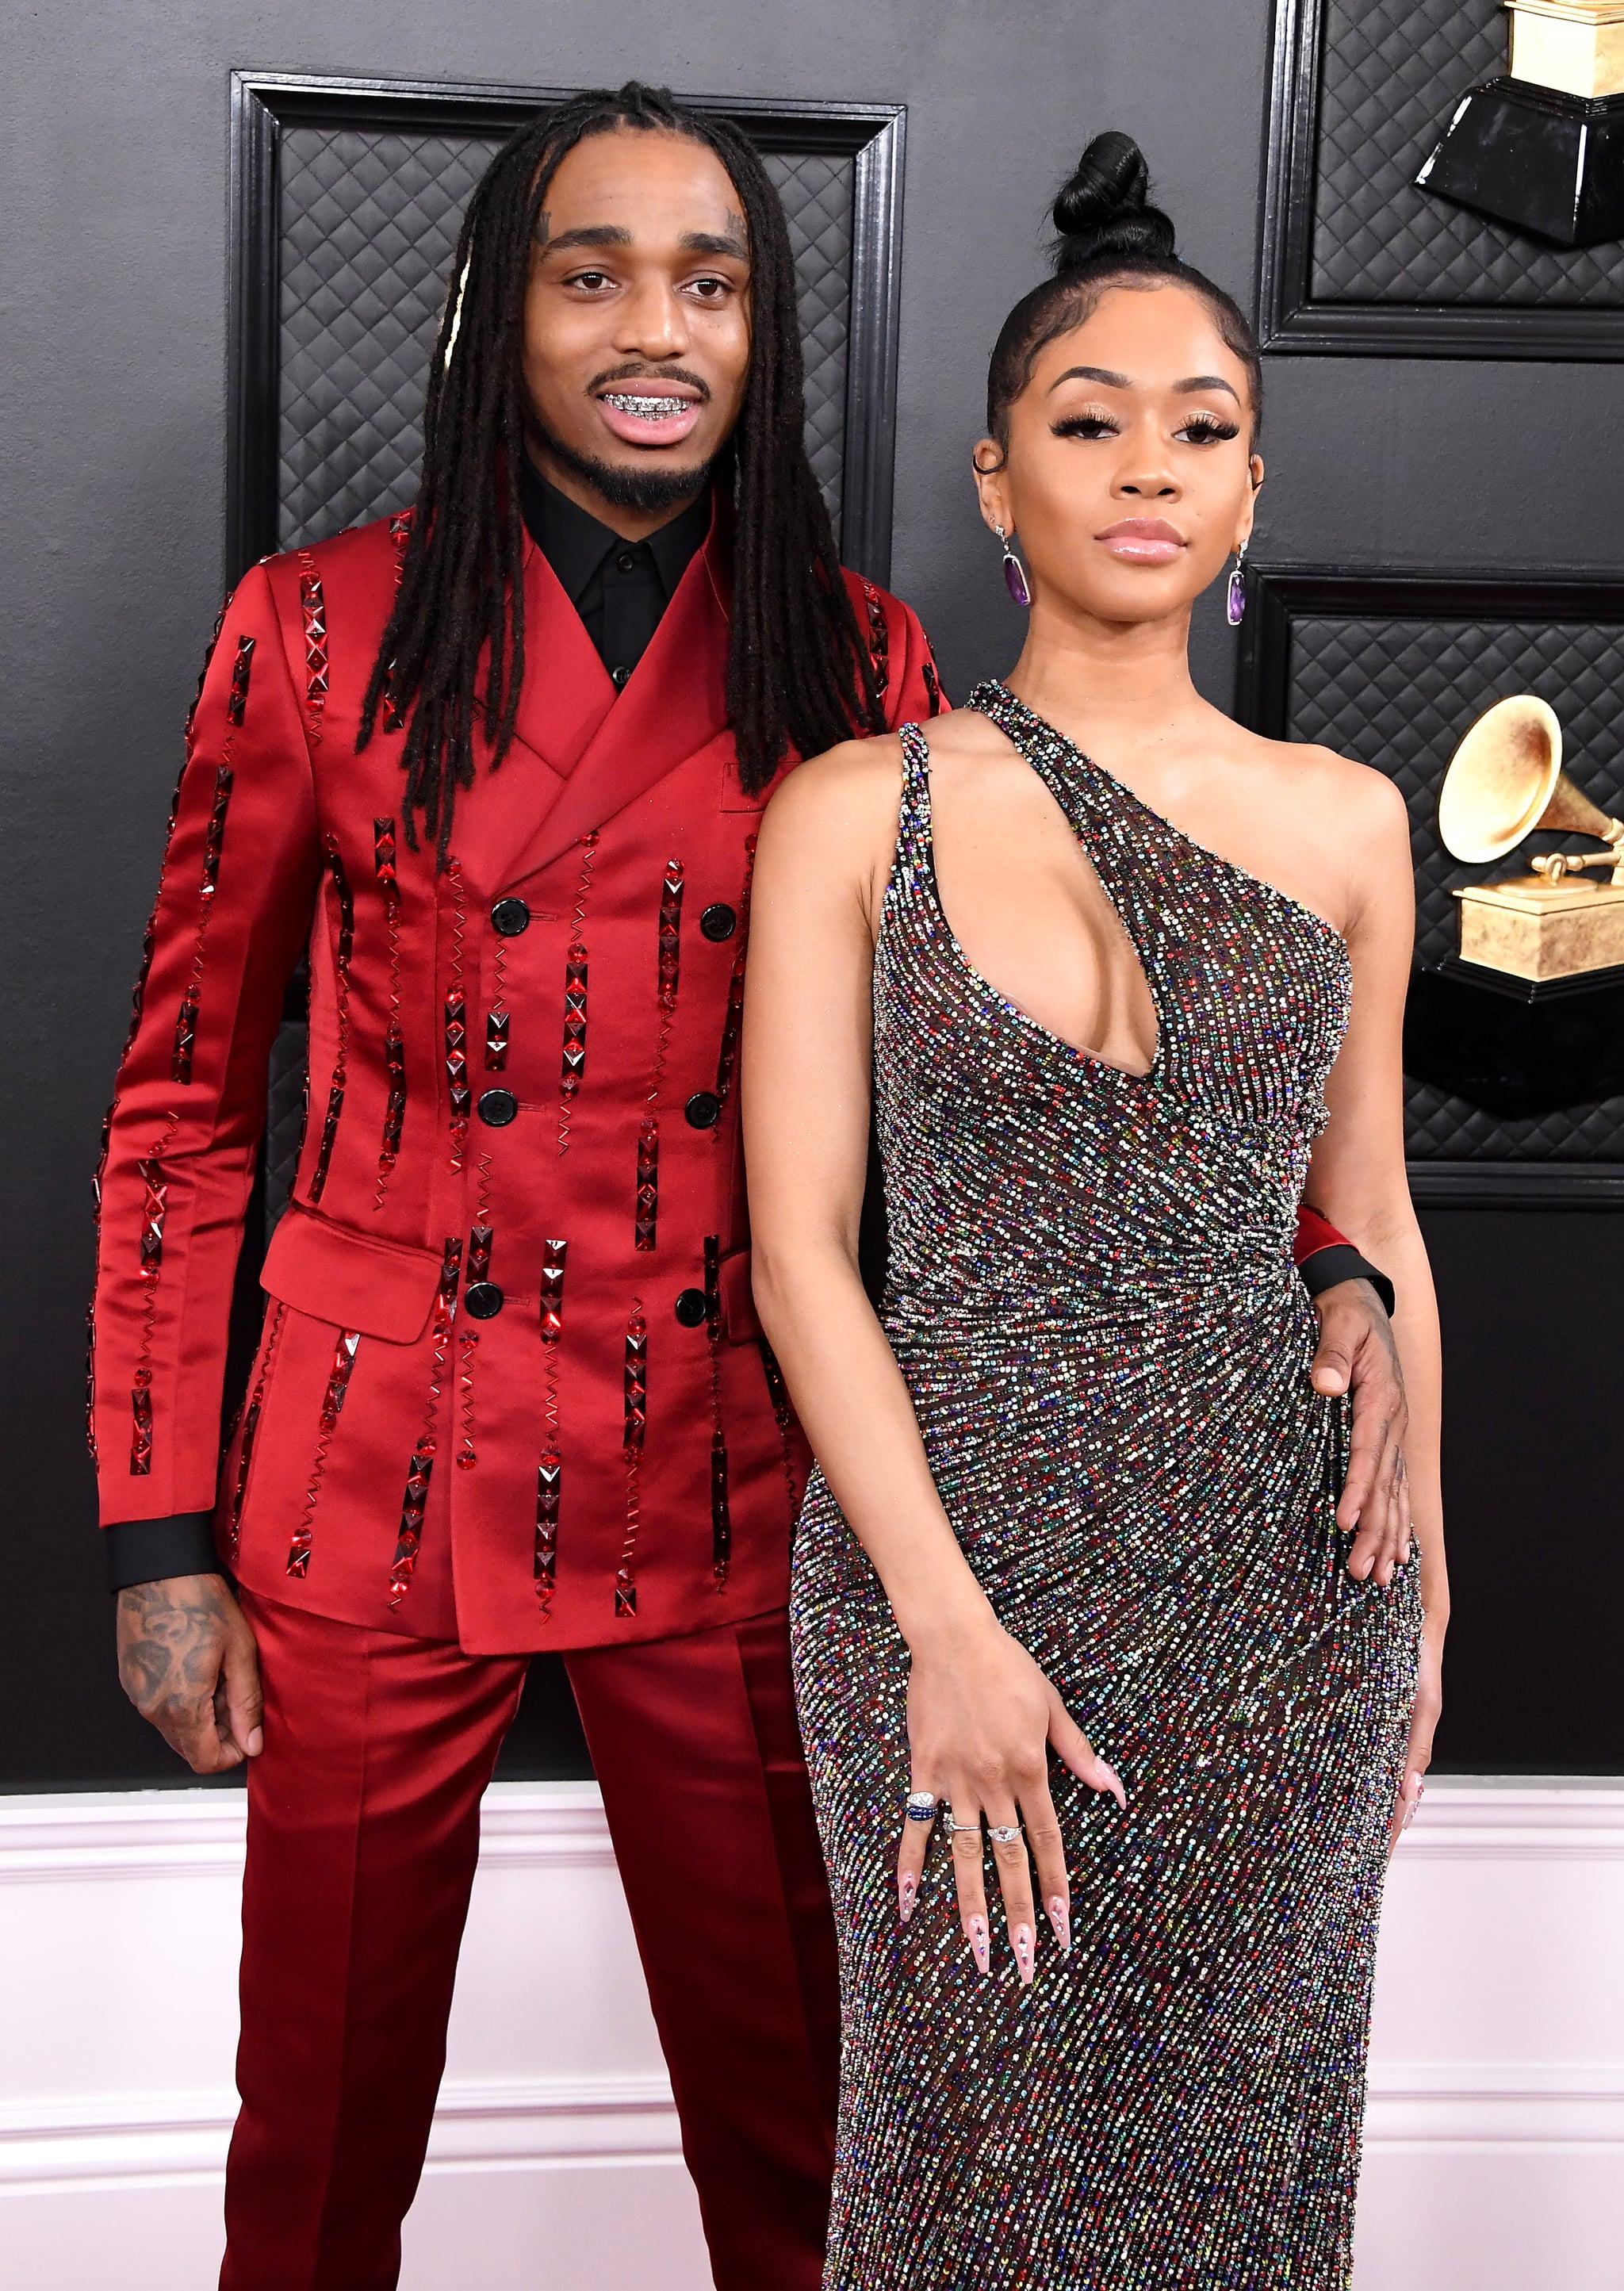 LOS ANGELES, CALIFORNIA - JANUARY 26: (L-R) Quavo and Saweetie attend the 62nd Annual GRAMMY Awards at Staples Center on January 26, 2020 in Los Angeles, California. (Photo by Steve Granitz/WireImage)